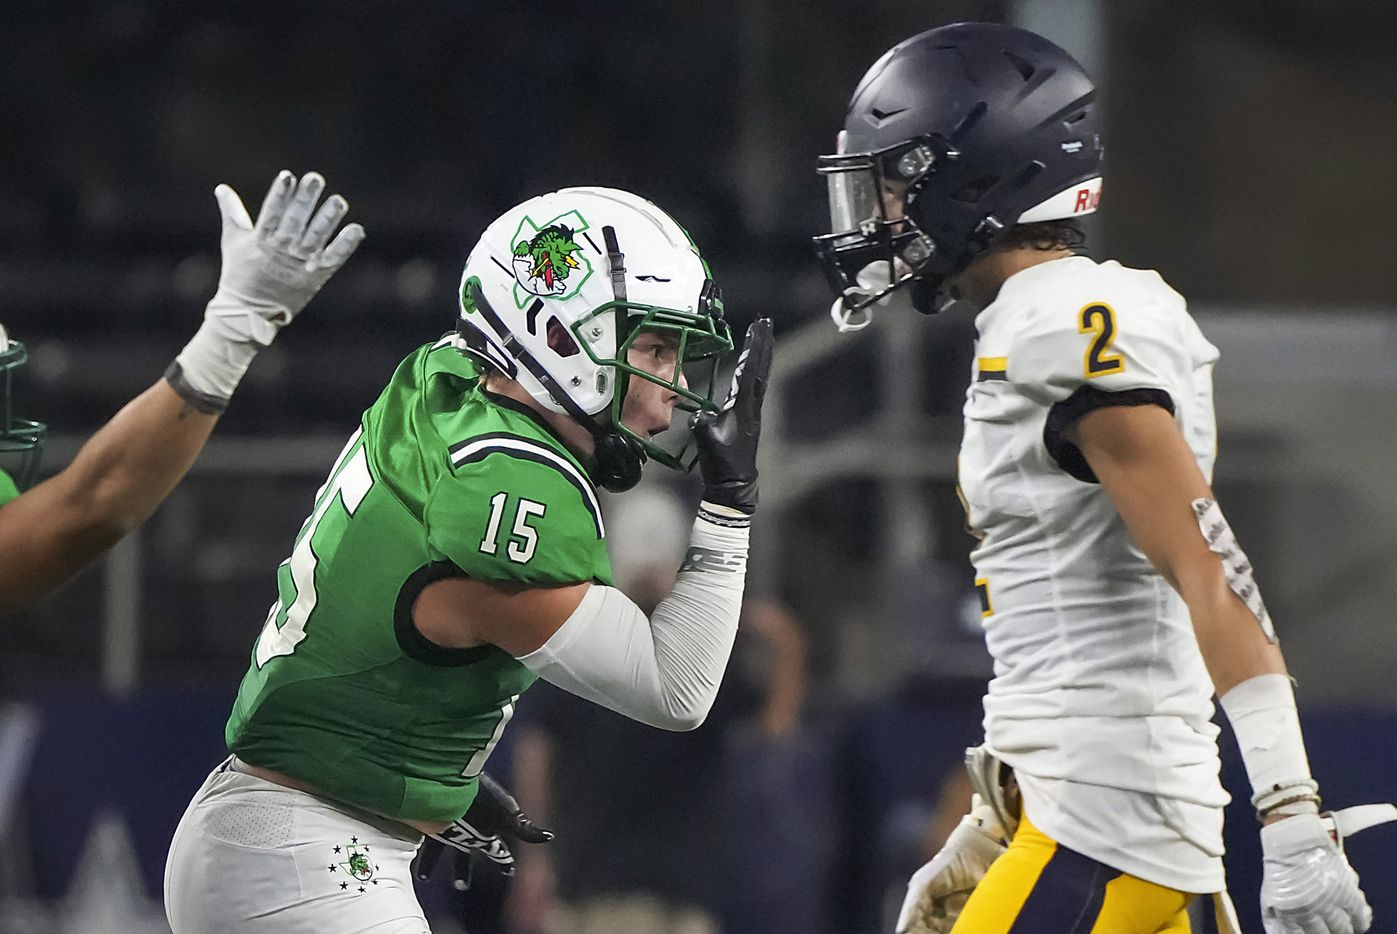 Southlake Carroll linebacker Allan Kleiman (15) celebrates after intercepting a pass during the second half of a high school football game against Highland Park at AT&T Stadium on Thursday, Aug. 26, 2021, in Arlington.